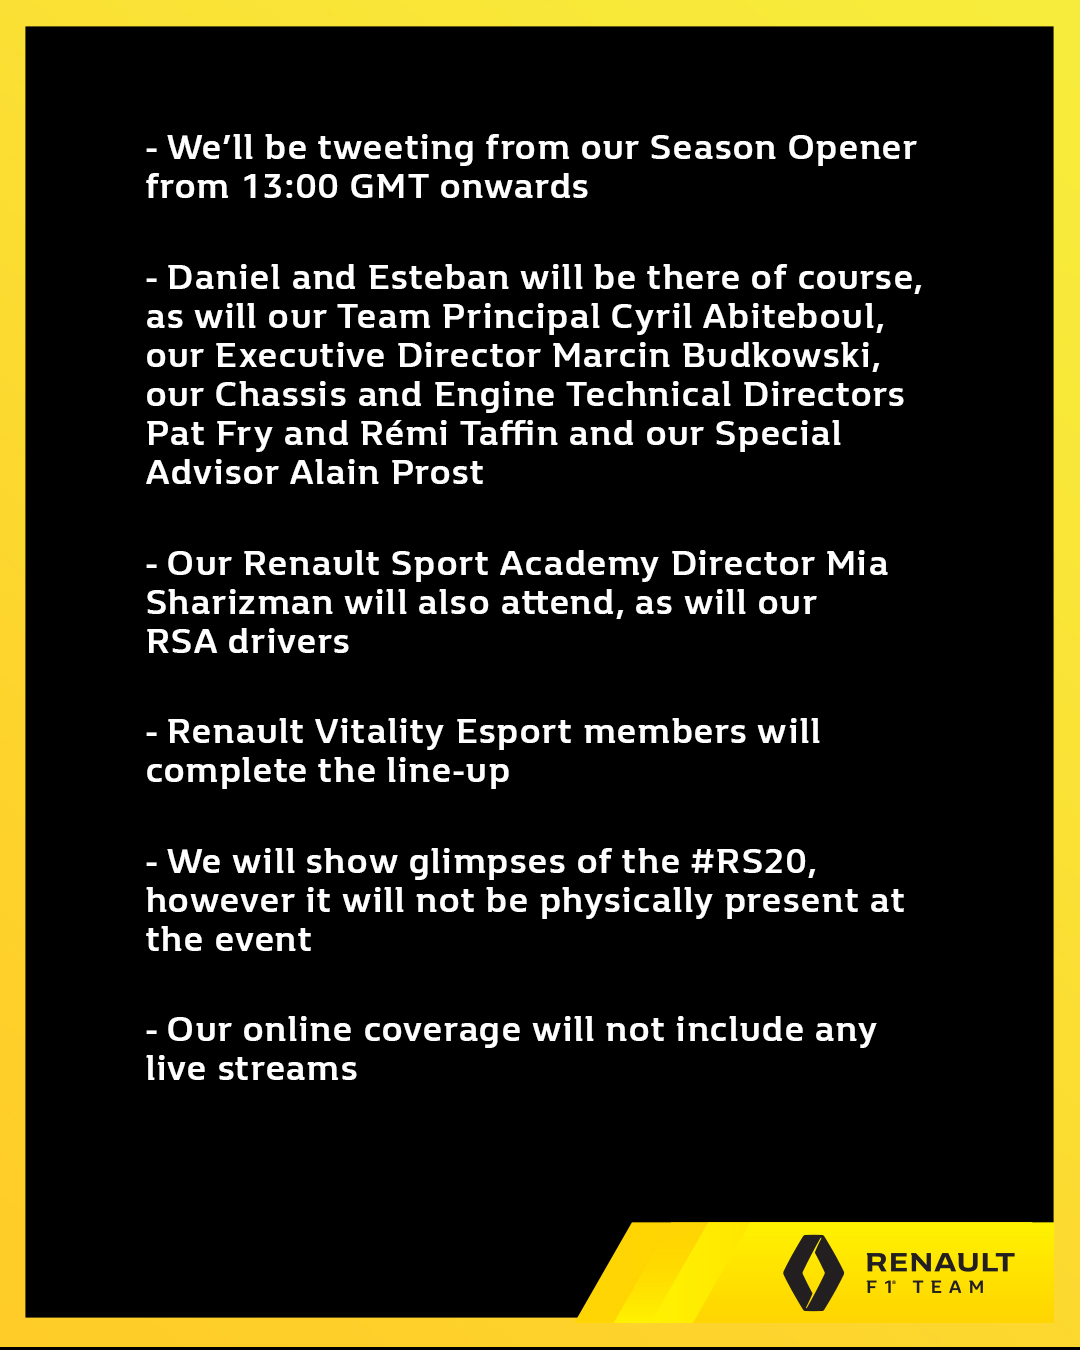 We'll be tweeting from our Season Opener from 13:00 GMT onwards Daniel & Esteban will be there, as will Cyril Abiteboul, Marcin Budkowski, Pat Fry, Rémi Taffin & Alain Prost  - Our Renault Sport Academy drivers & Renault Vitality Esport will complete the line-up  - We will show glimpses of the #RS20, however it will not be physically present at the event - Our online coverage will not include any live streams